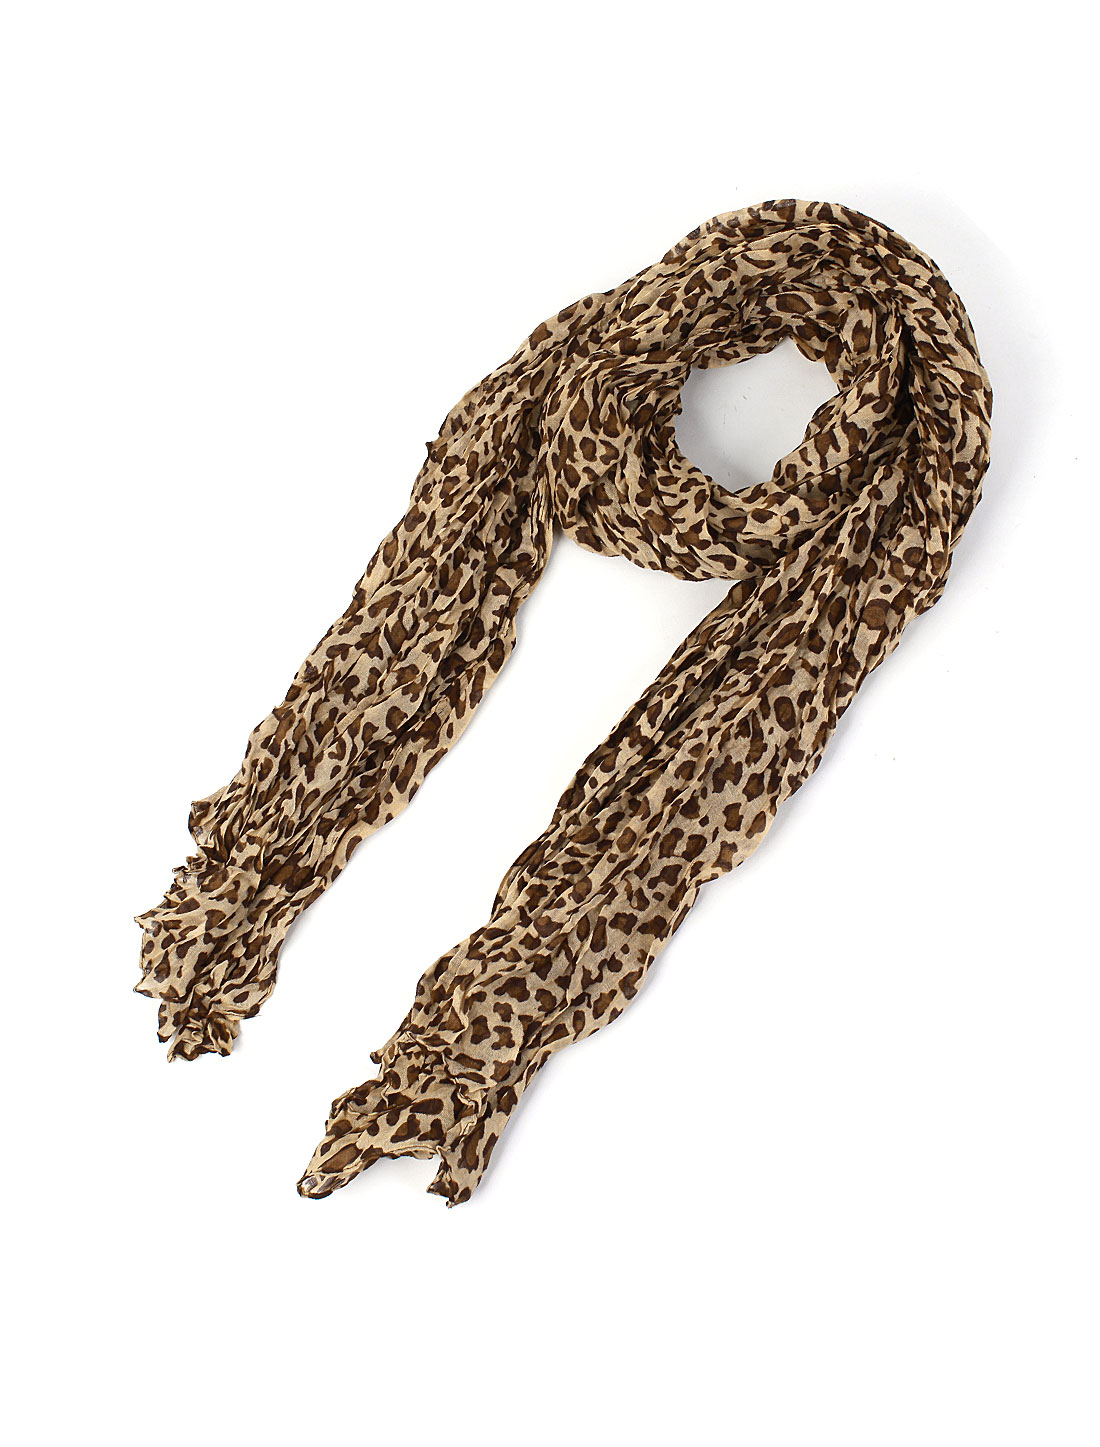 Woman Rectangular Leopard Pattern Cotton Voile Shawl Neck Wrap Scarf Light Brown